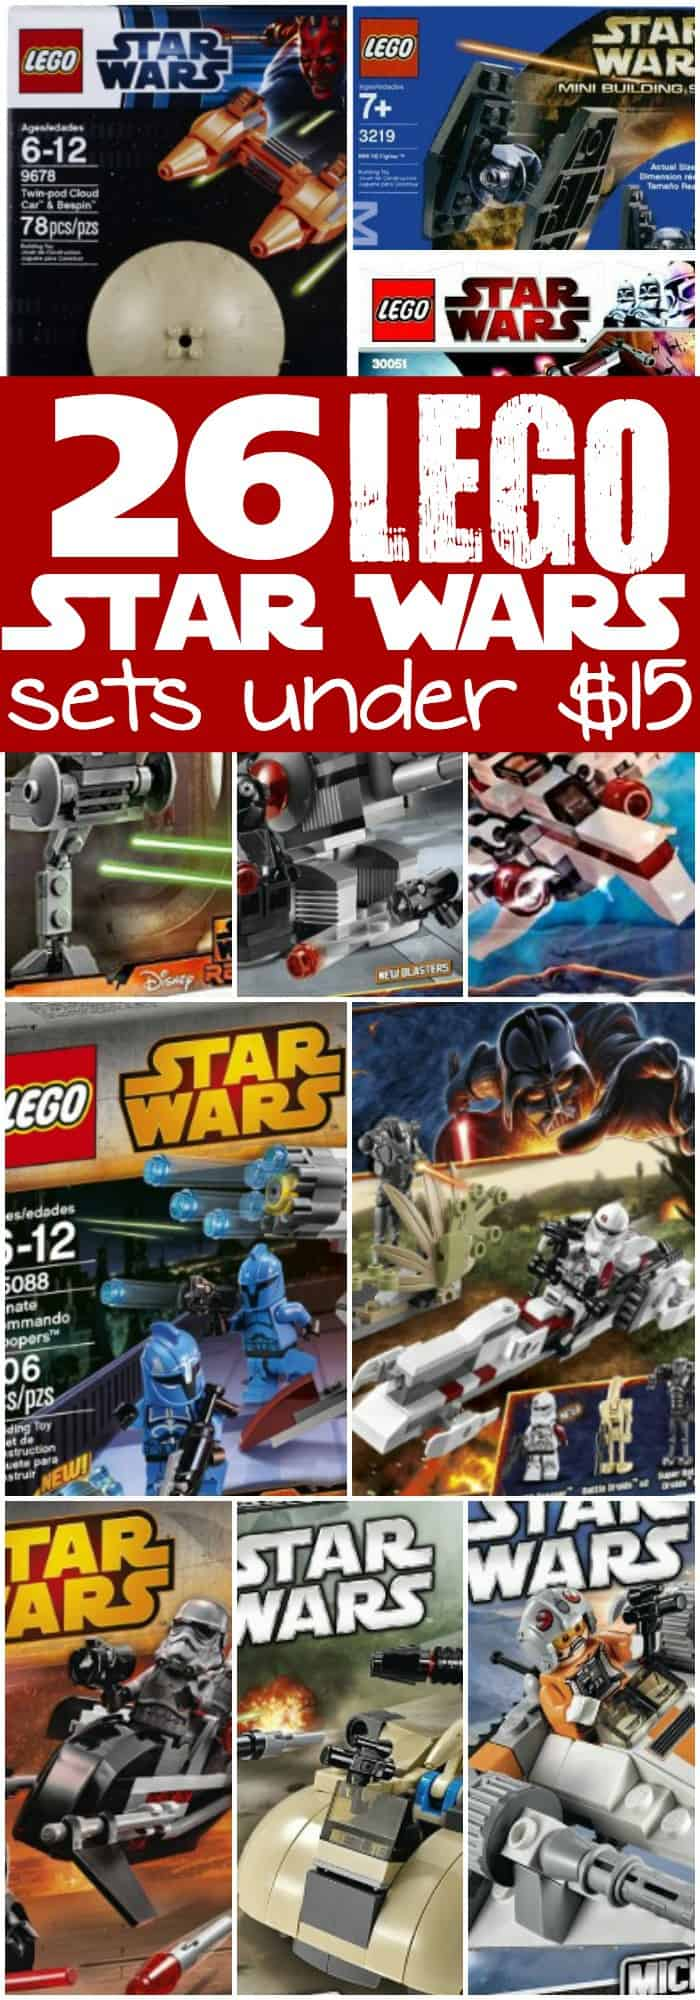 Wow! I had no idea that there were so many LEGO Star Wars sets for under $15. So, maybe Christmas CAN be affordable.